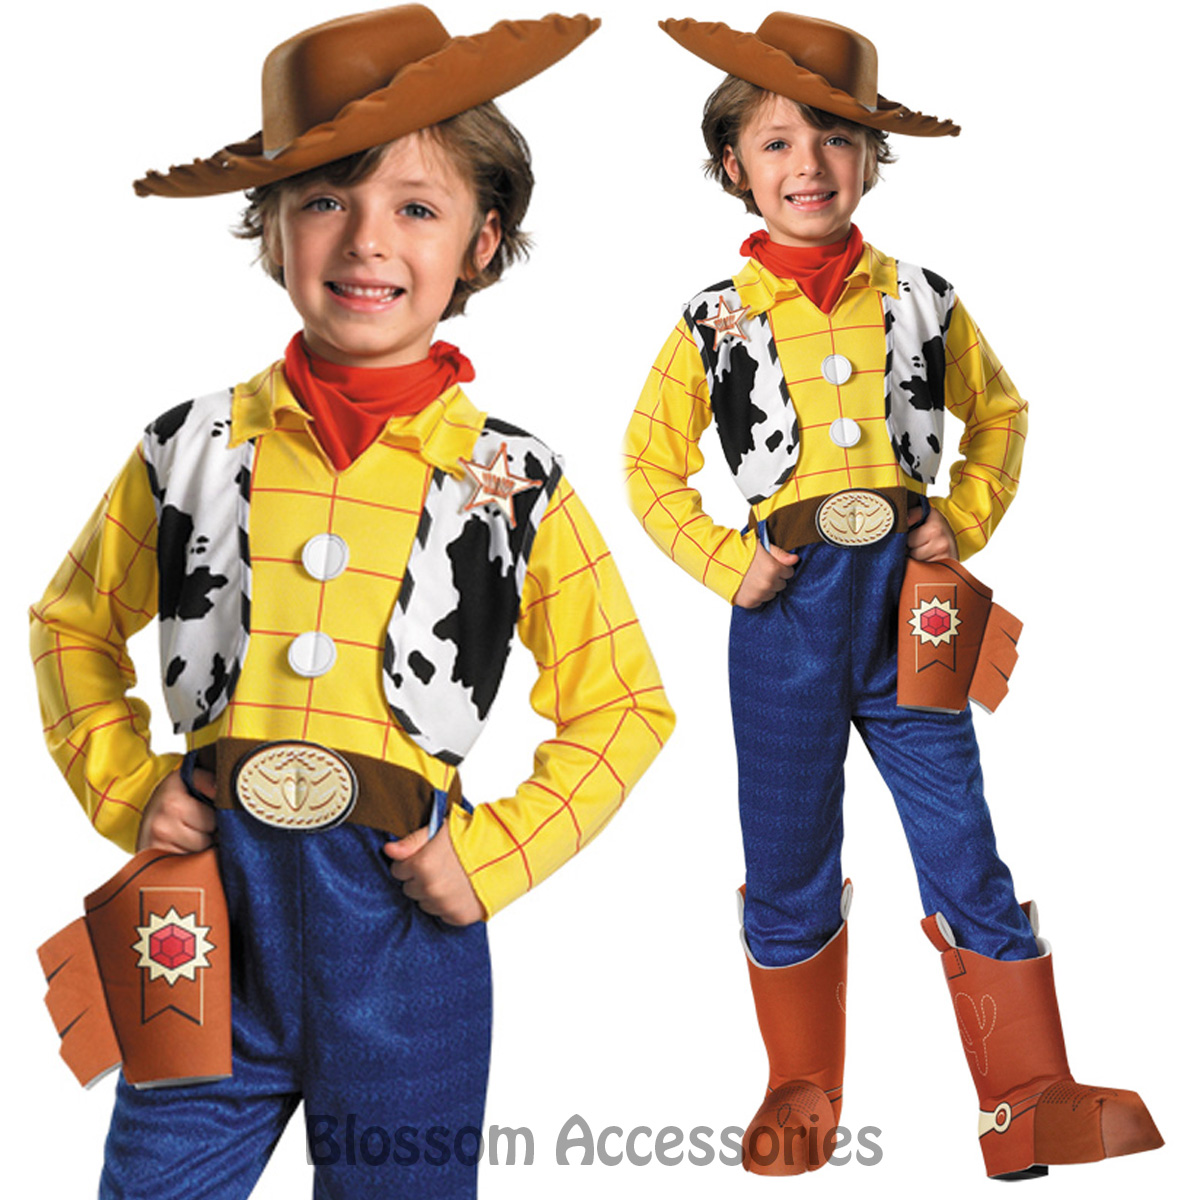 CK699 Deluxe Toy Story Cowboy Woody Fancy Dress Up Child Boys Book Week Costume  sc 1 st  eBay & Disney Toy Story Woody Deluxe Toddler Child Costume 4 6 | eBay